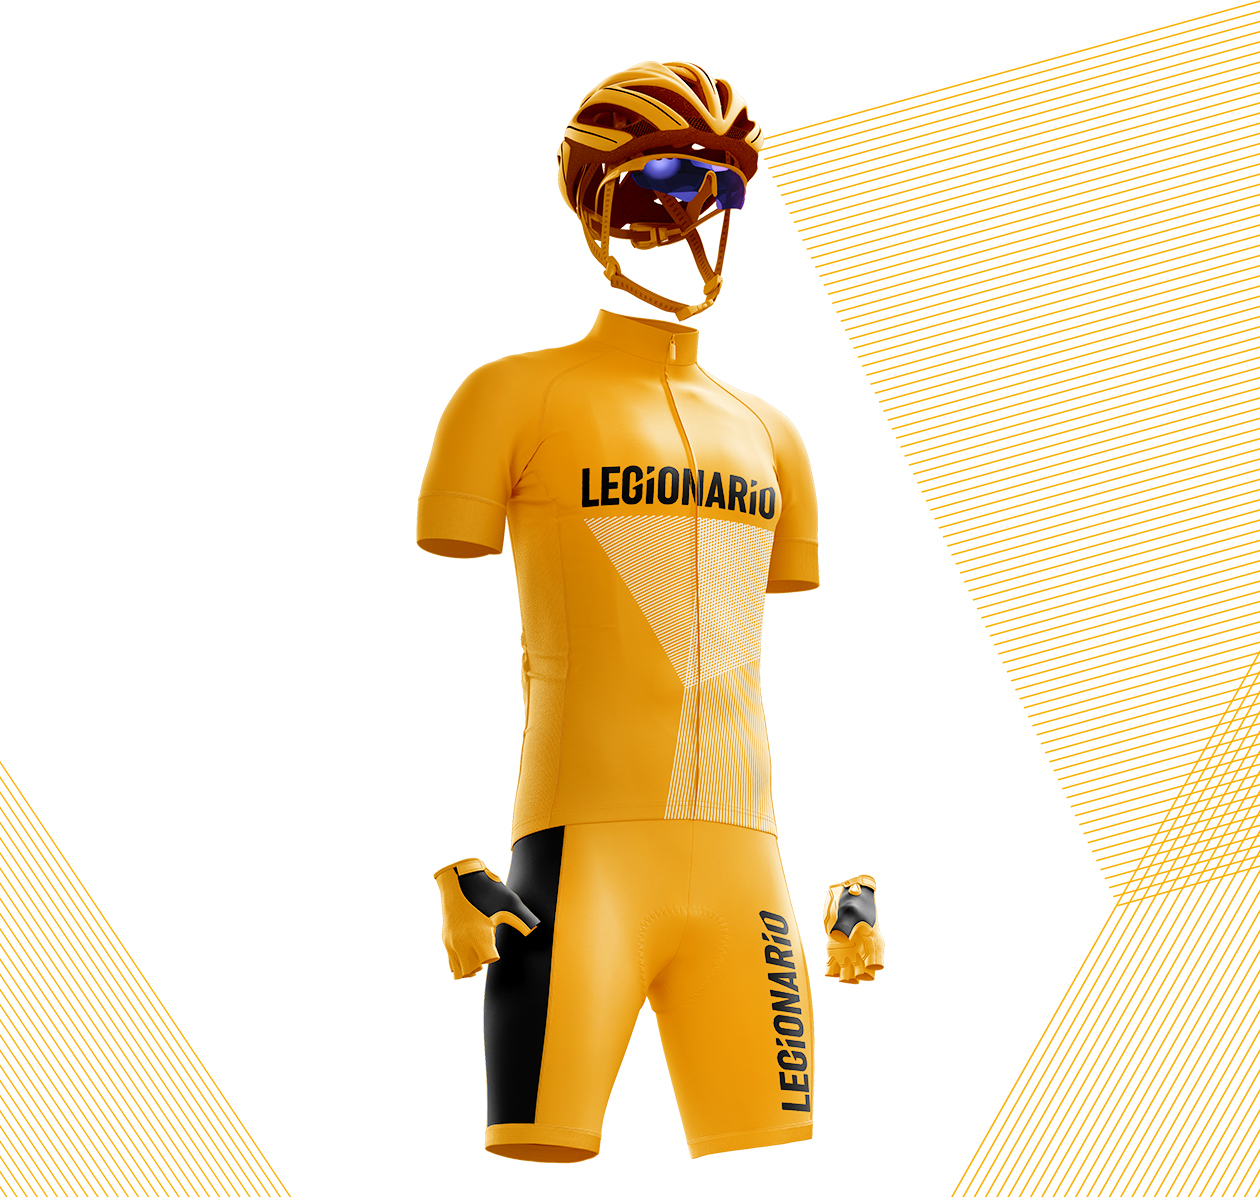 legionario packaging